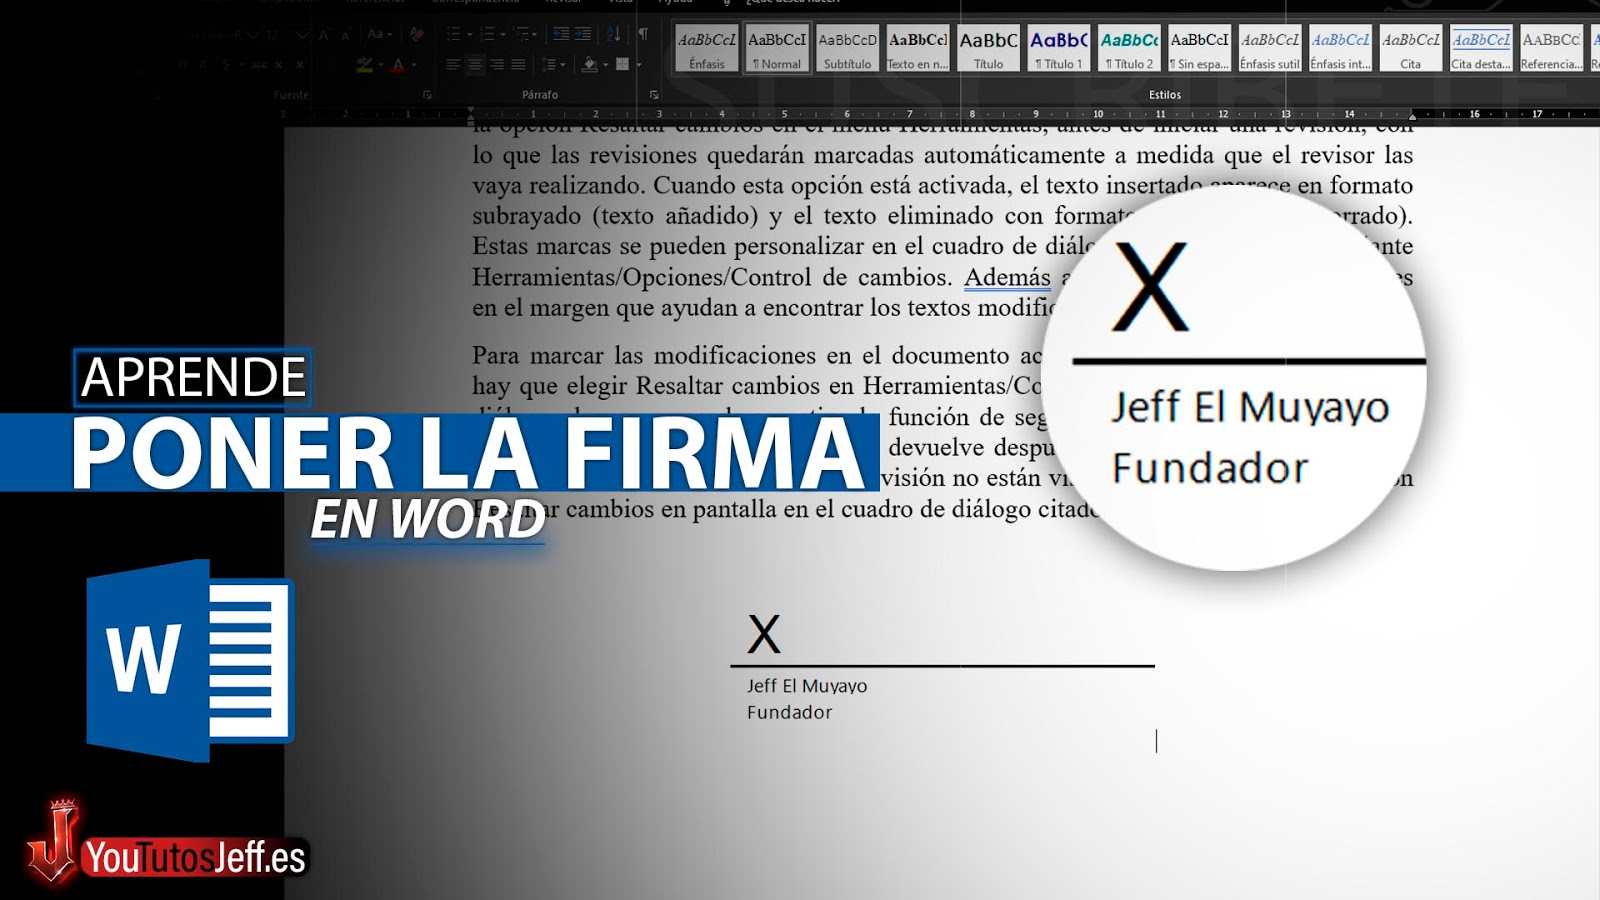 Como Poner la Firma en Documento Word